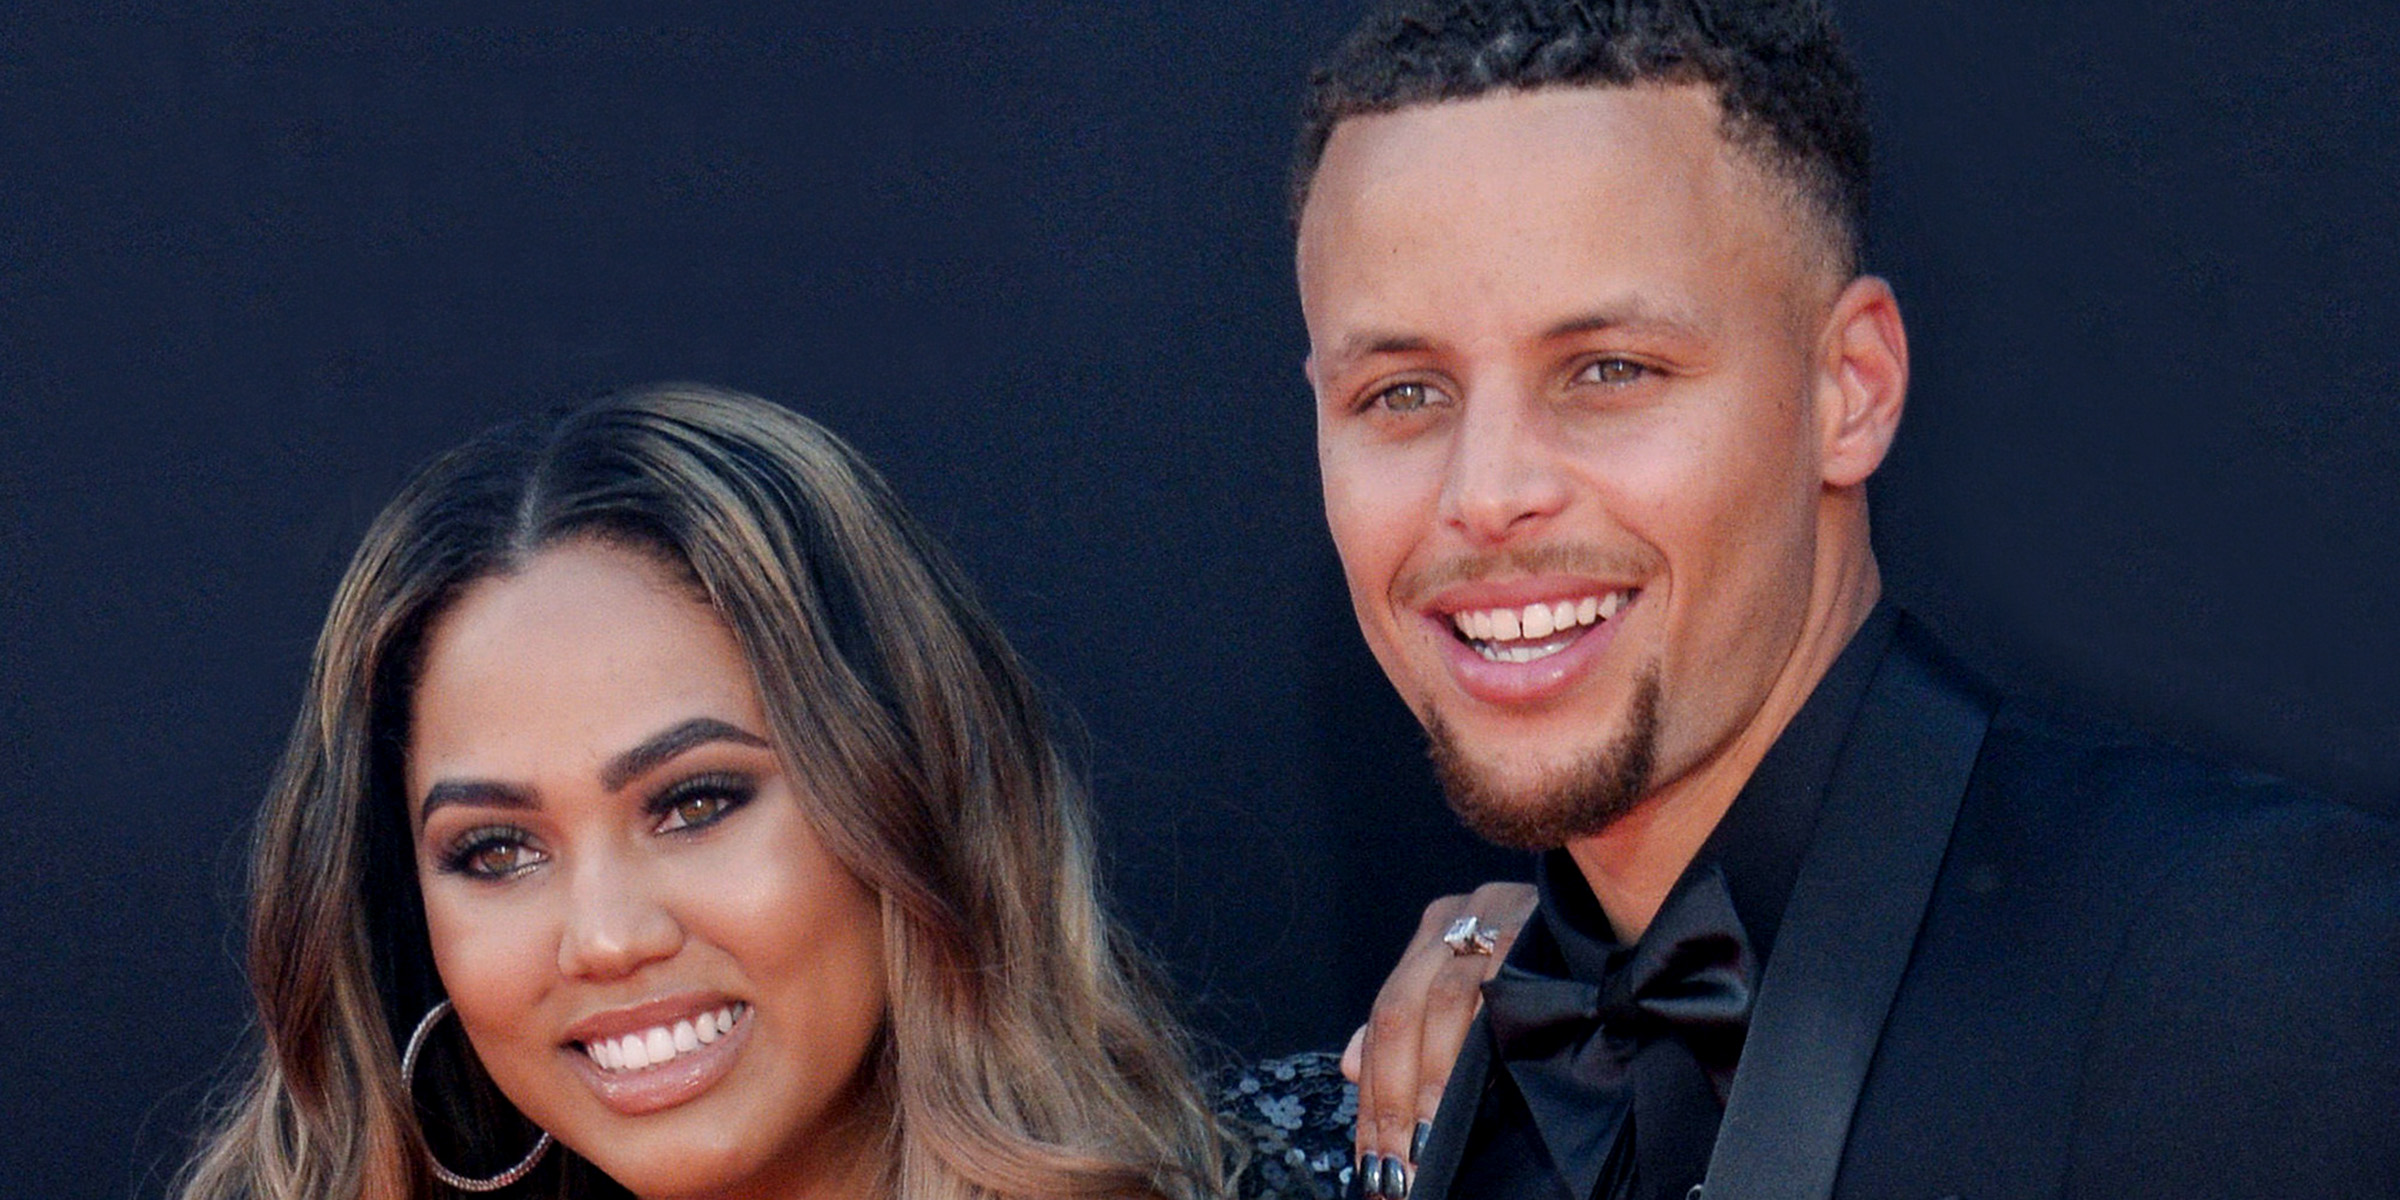 Steph Curry Defends Wife Ayesha After Criticism For New Look